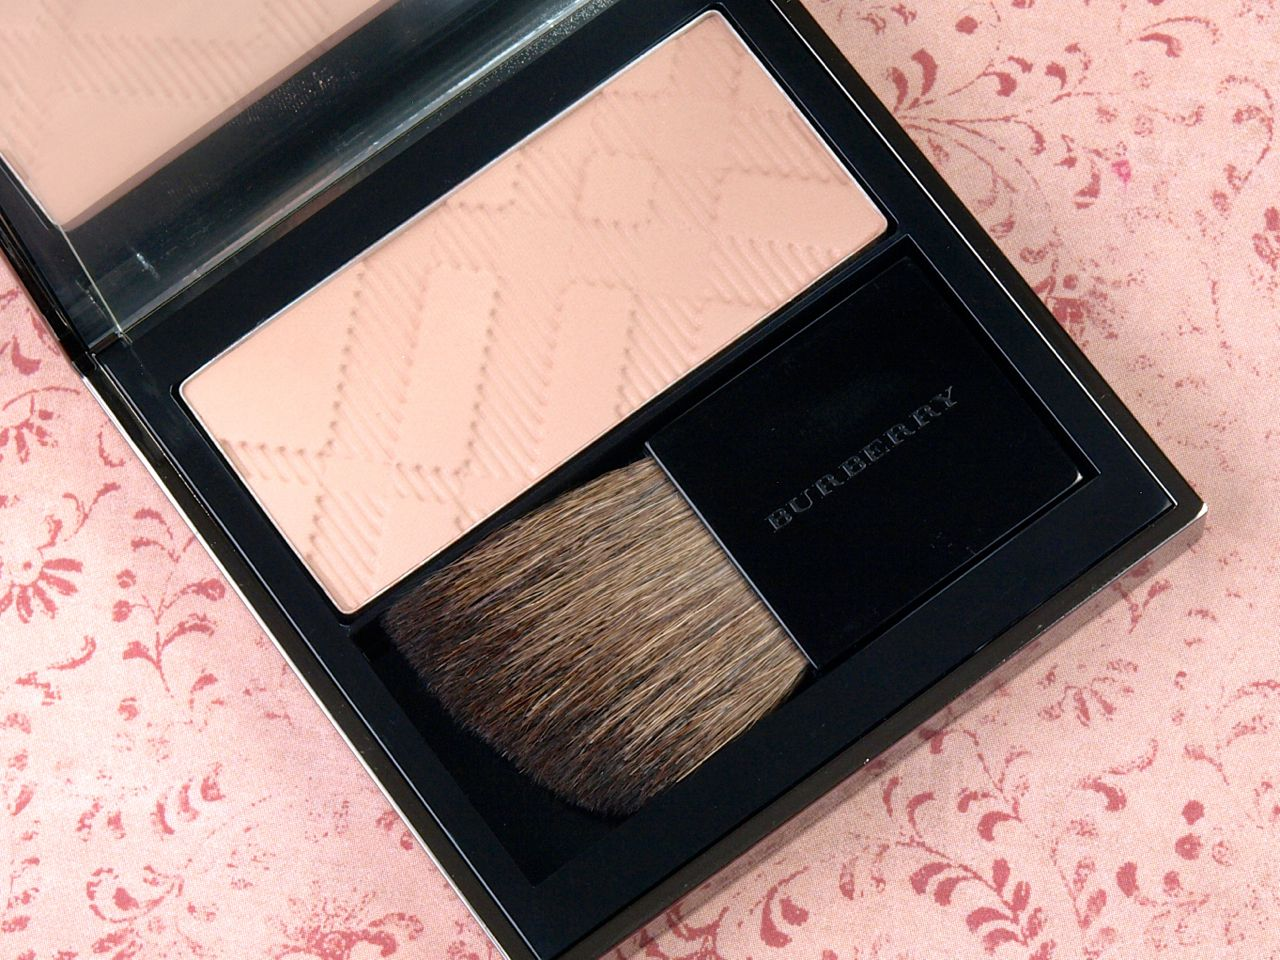 Burberry Fall/Winter 2014 Makeup Collection: Review